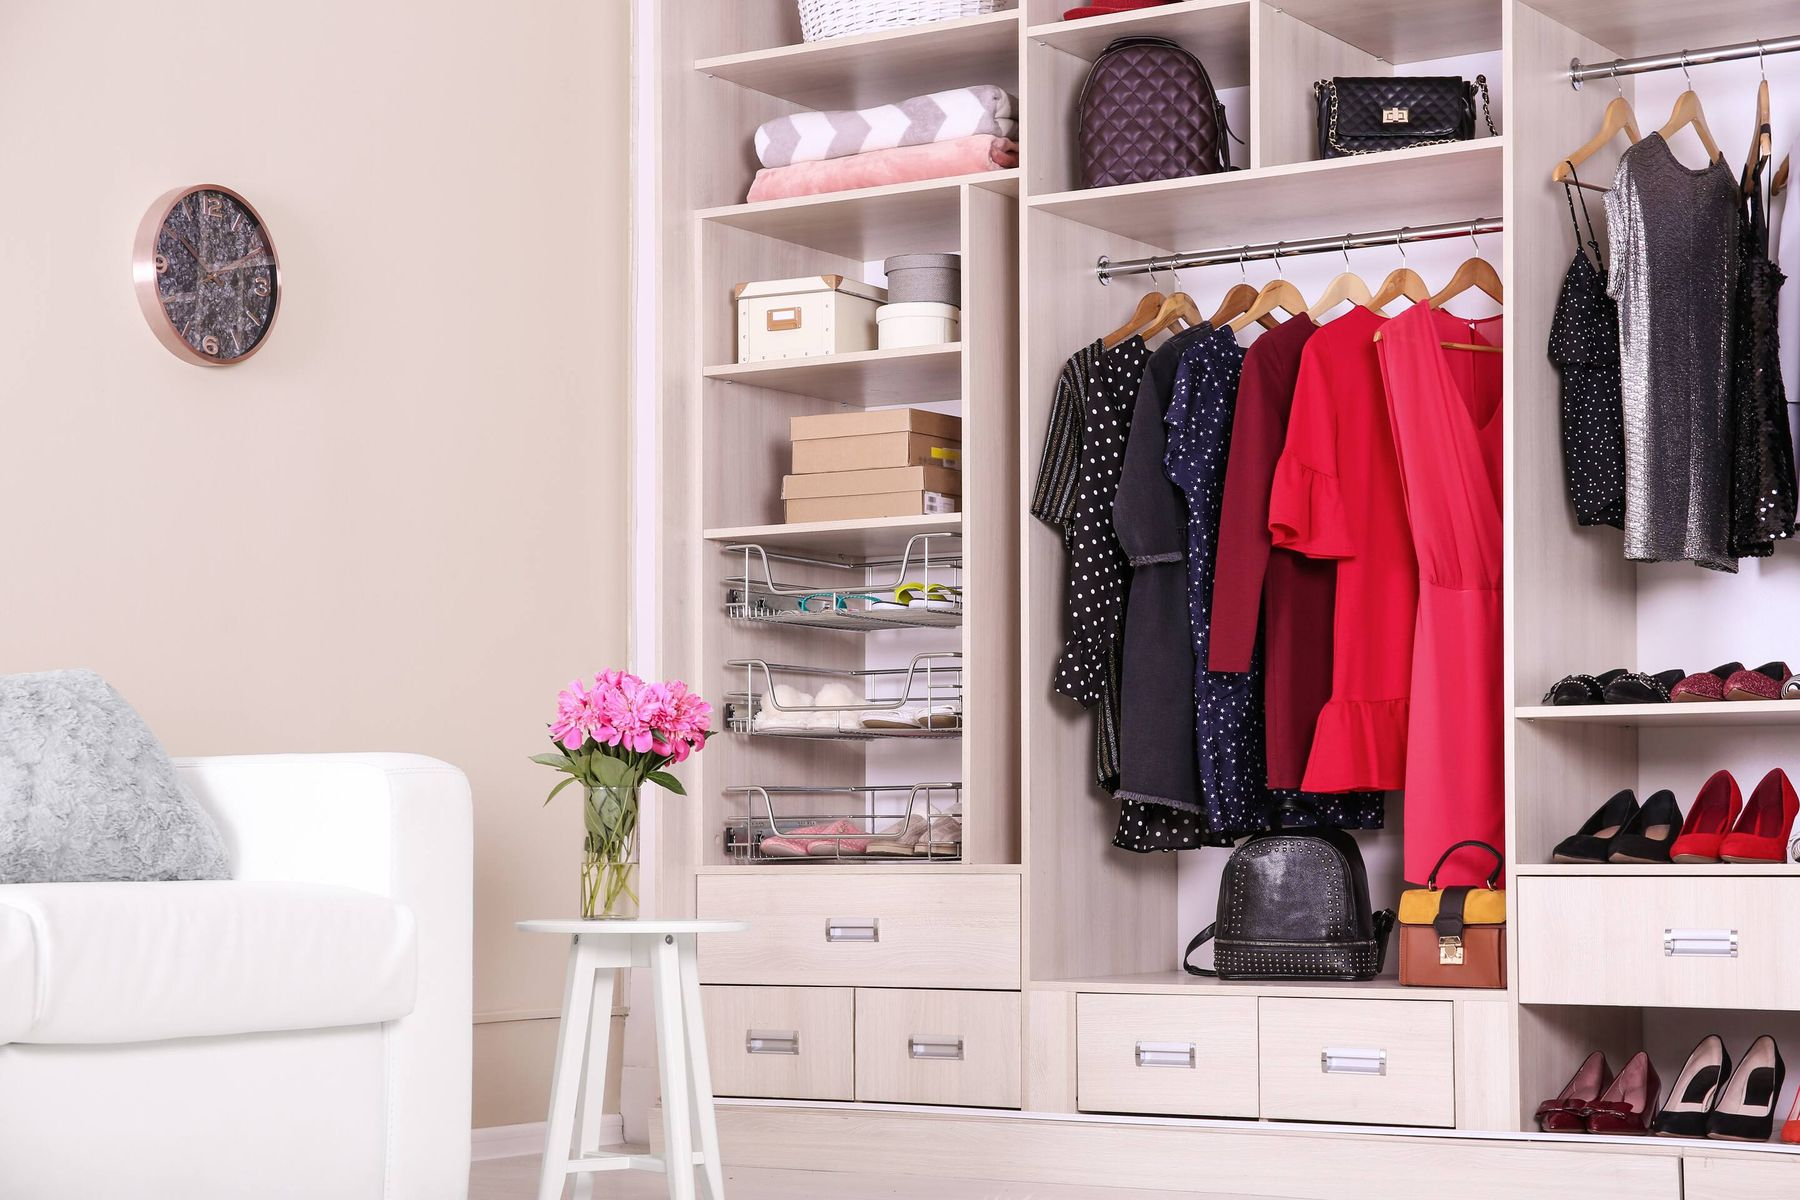 How to Declutter Your Home | Cleanipedia